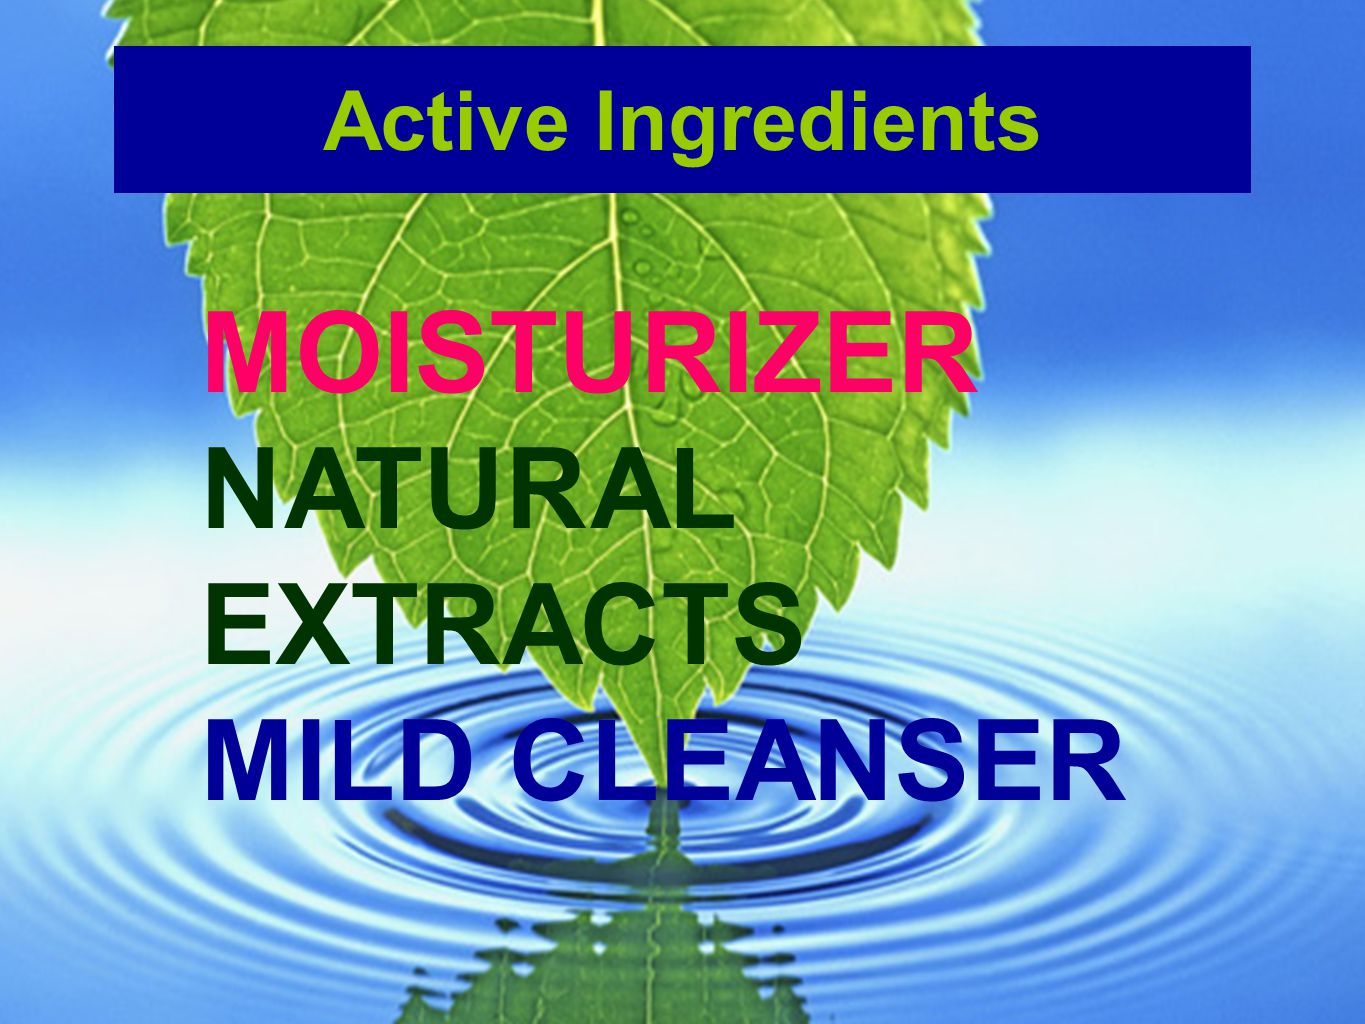 Active Ingredients MOISTURIZER NATURAL EXTRACTS MILD CLEANSER